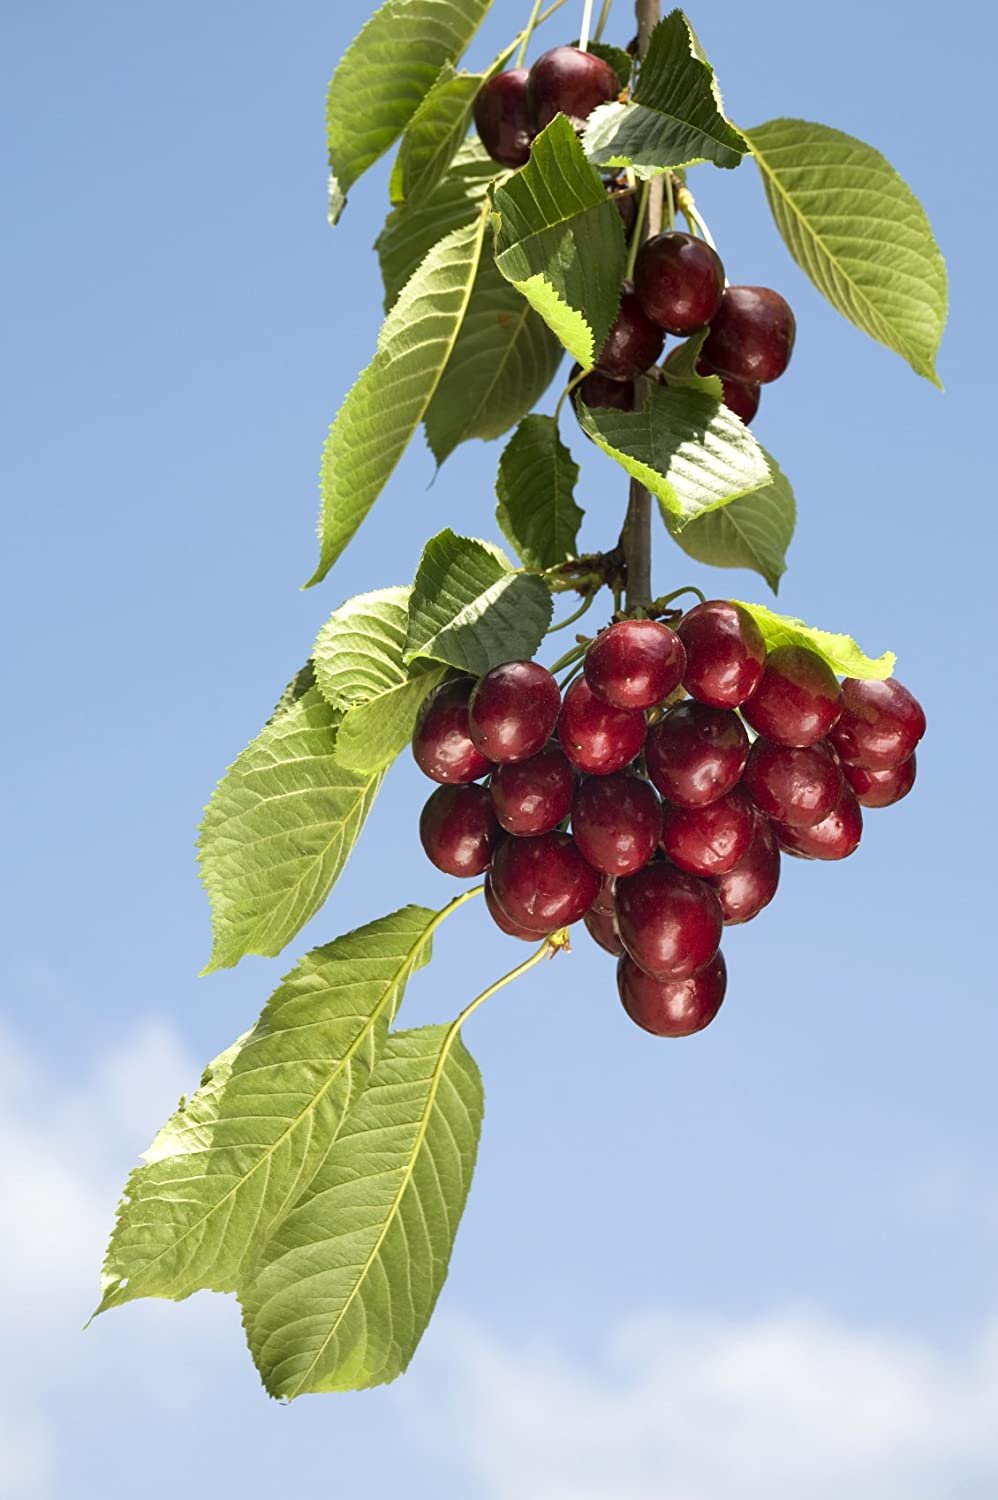 'Sunburst' Cherry Tree 4-5ft In 5L POT Self-Fertile With Big Dark Cherries Ready to Fruit 3fatpigs beechwoodtrees 3fatpigs®